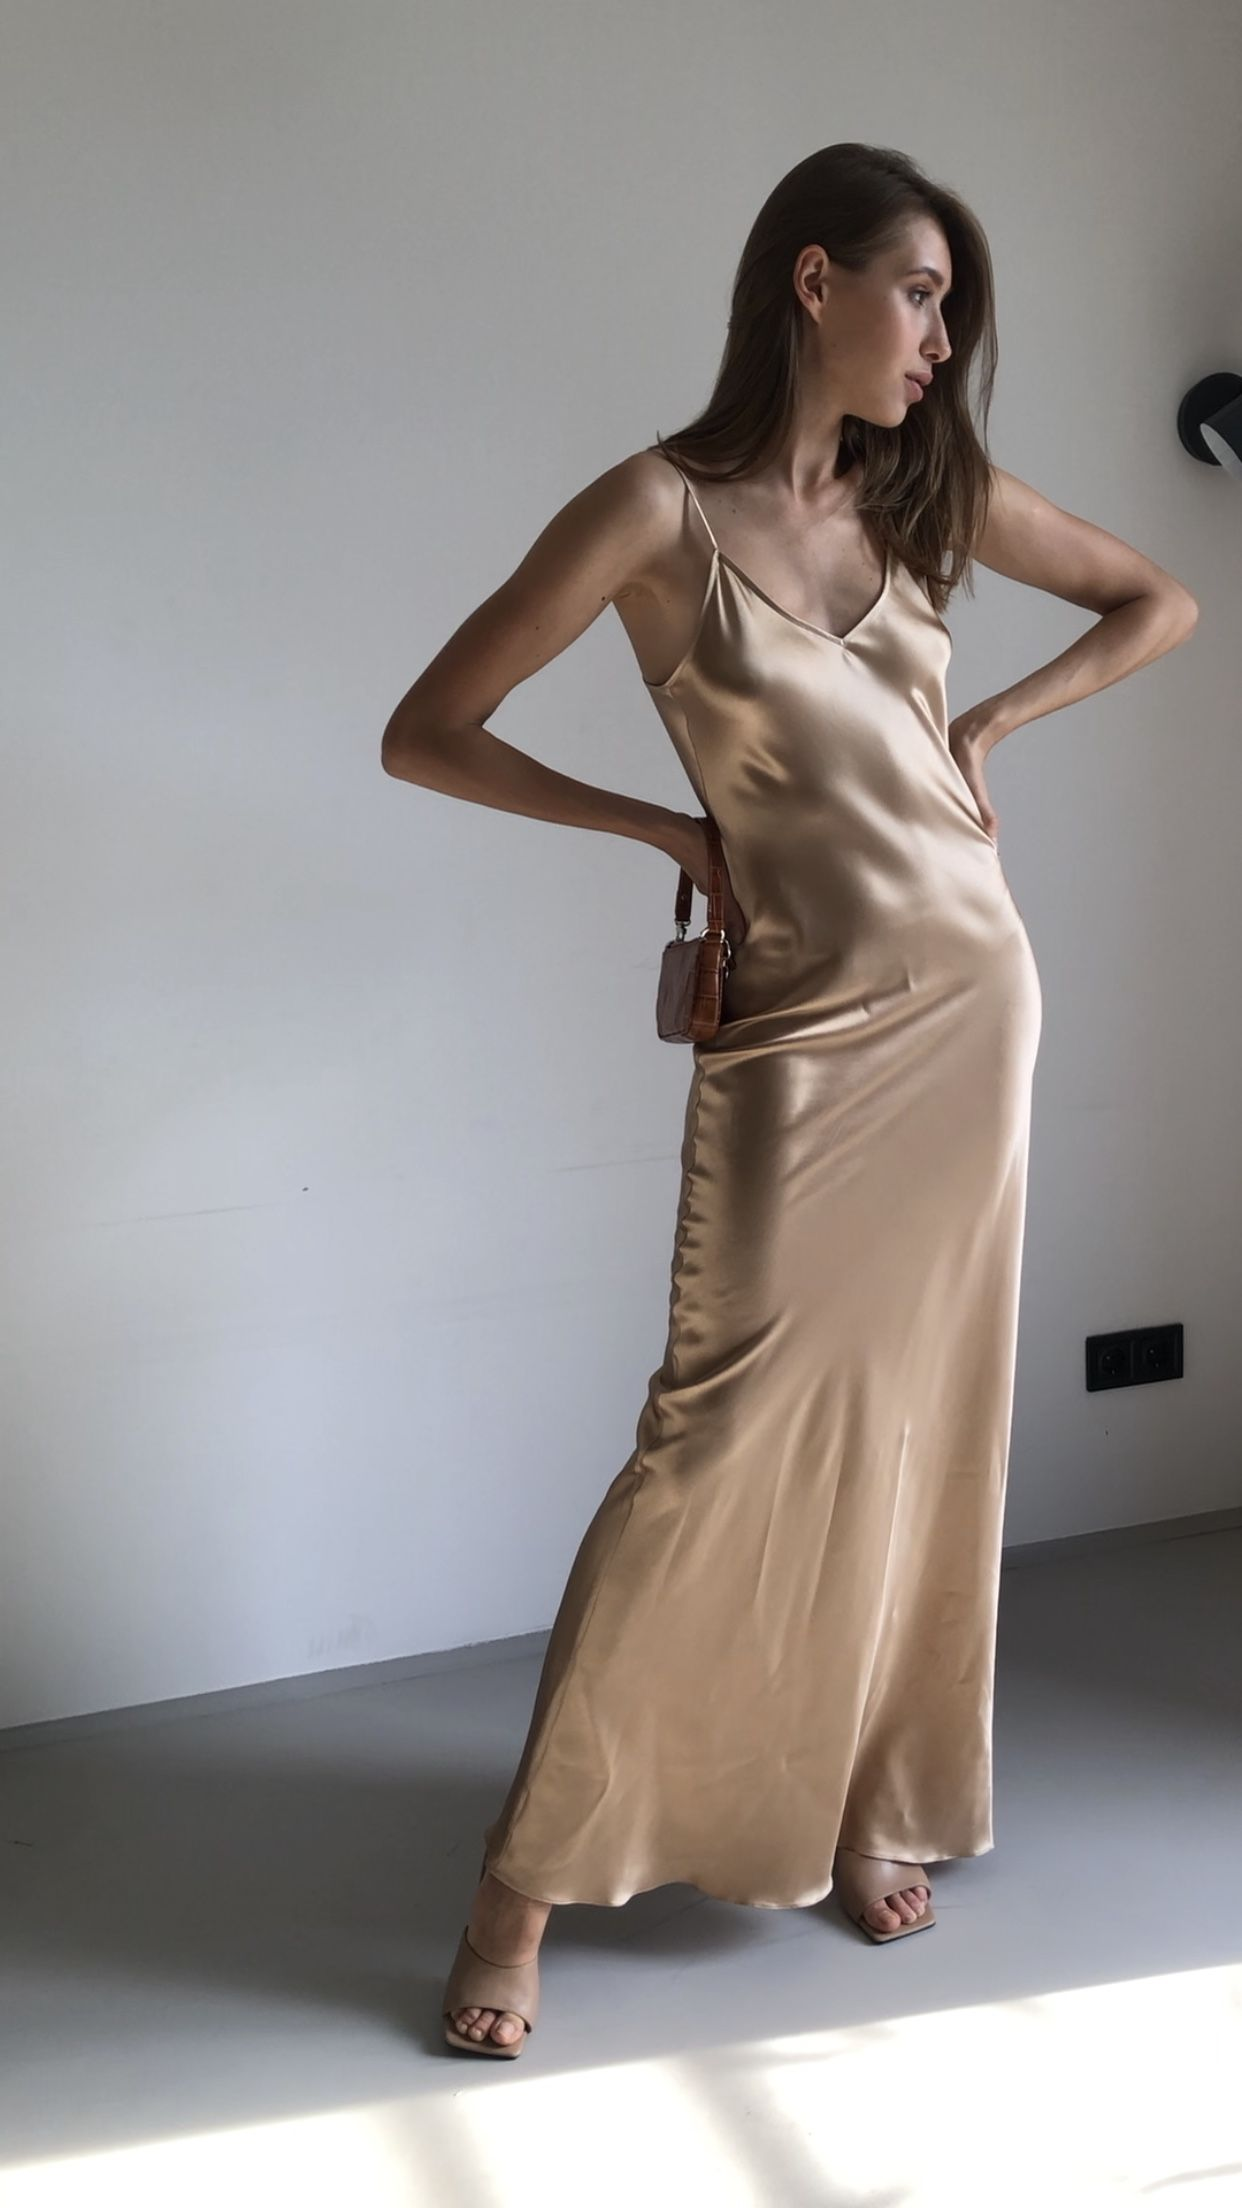 Pin on Silky Outfit